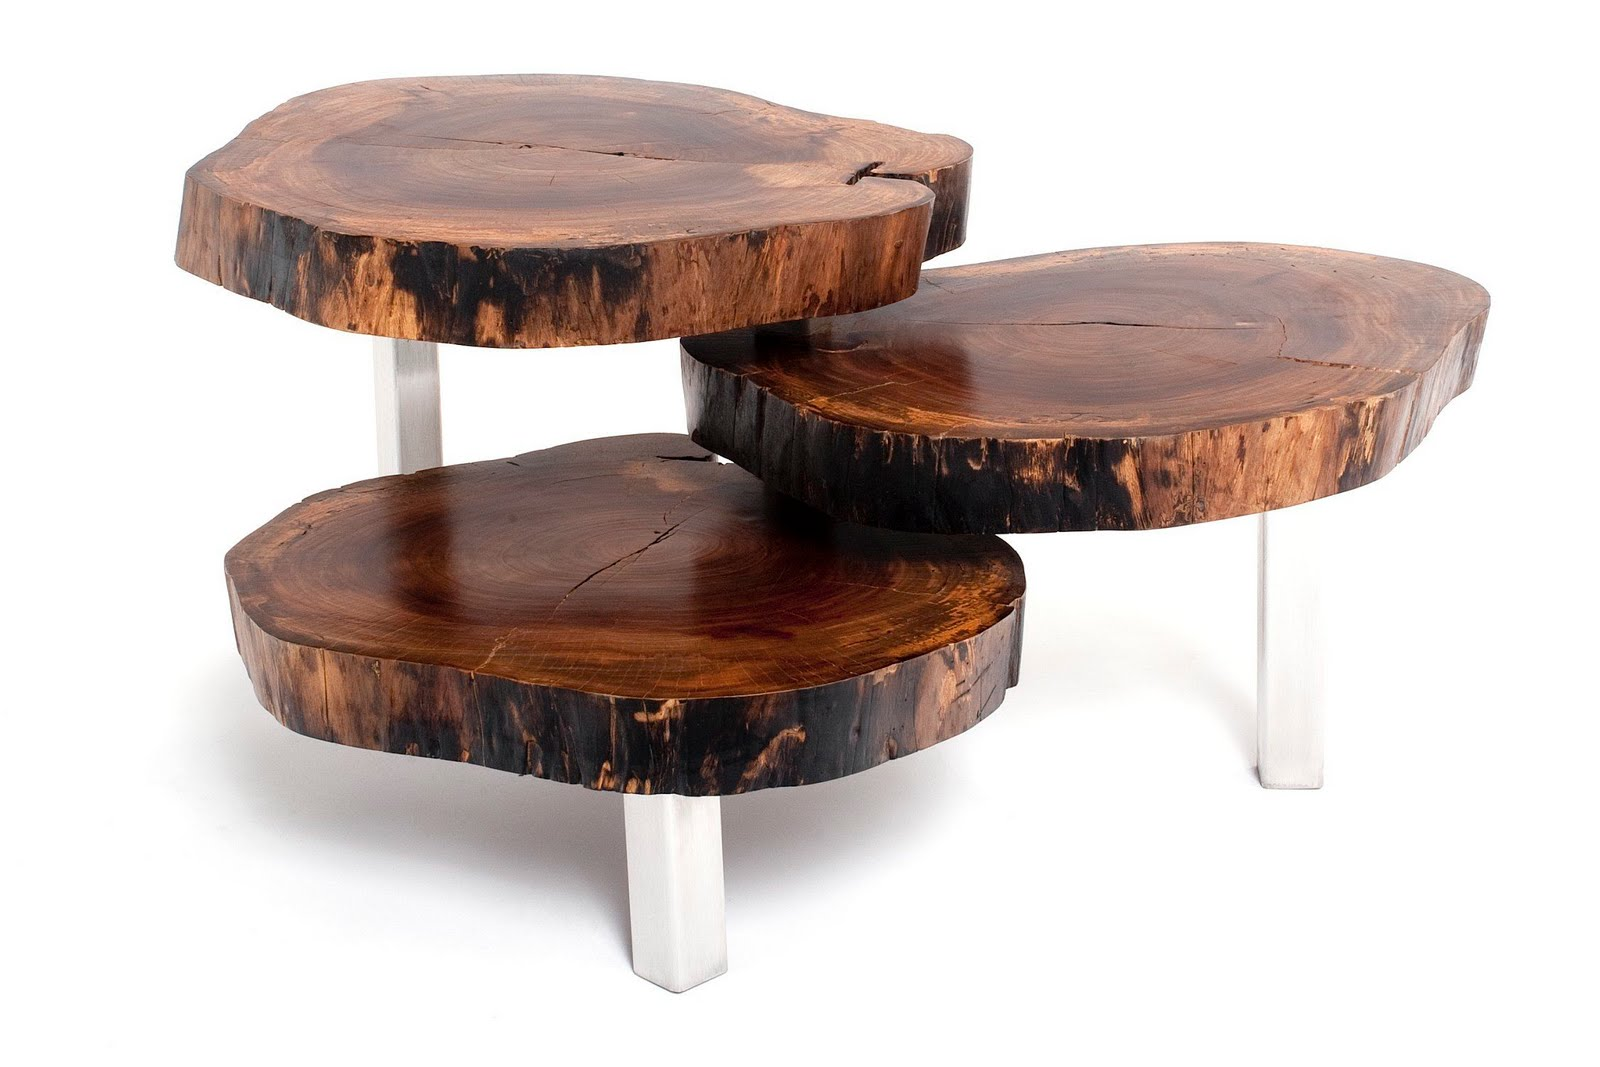 Eco friendly exotic wood tables globally gorgeous - Wooden furniture ideas ...